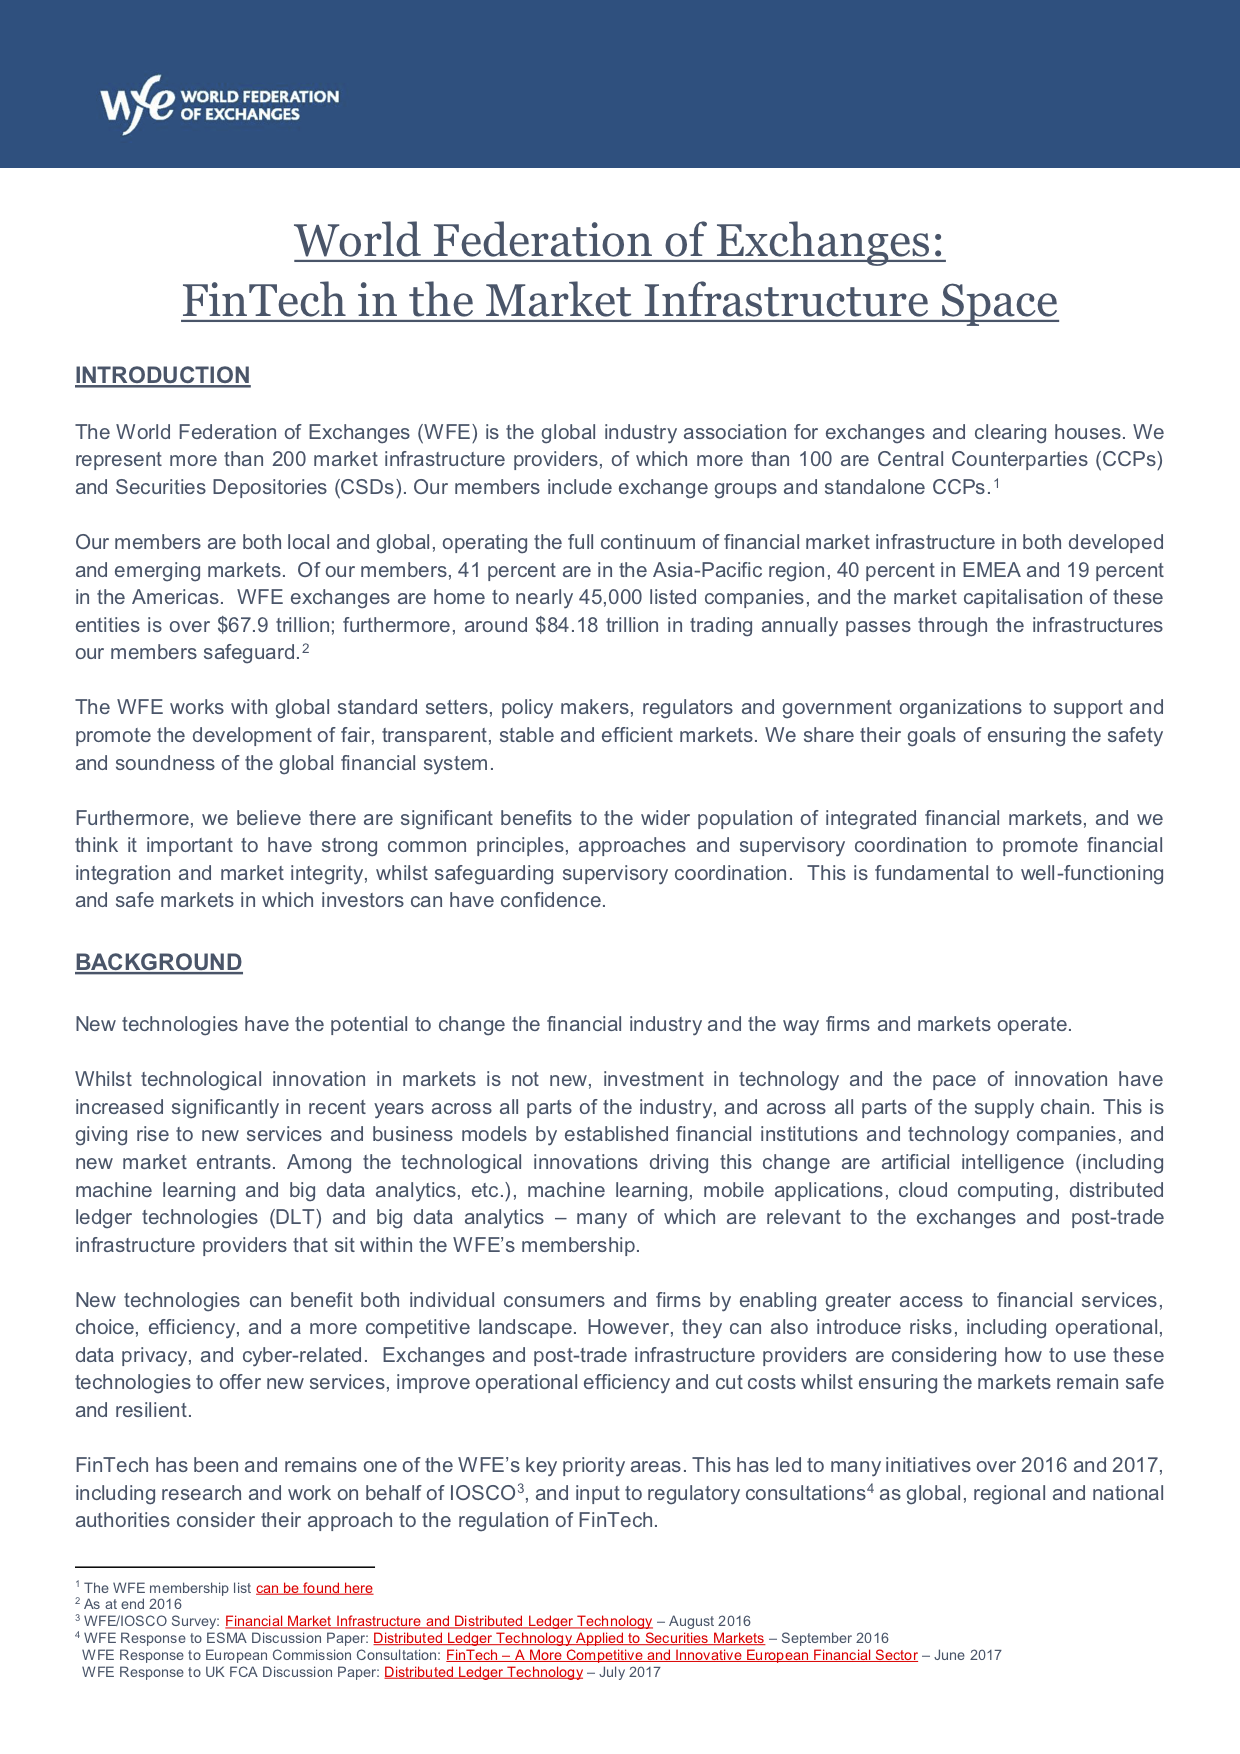 WFE FinTech in the Market Infrastructure Space | The World